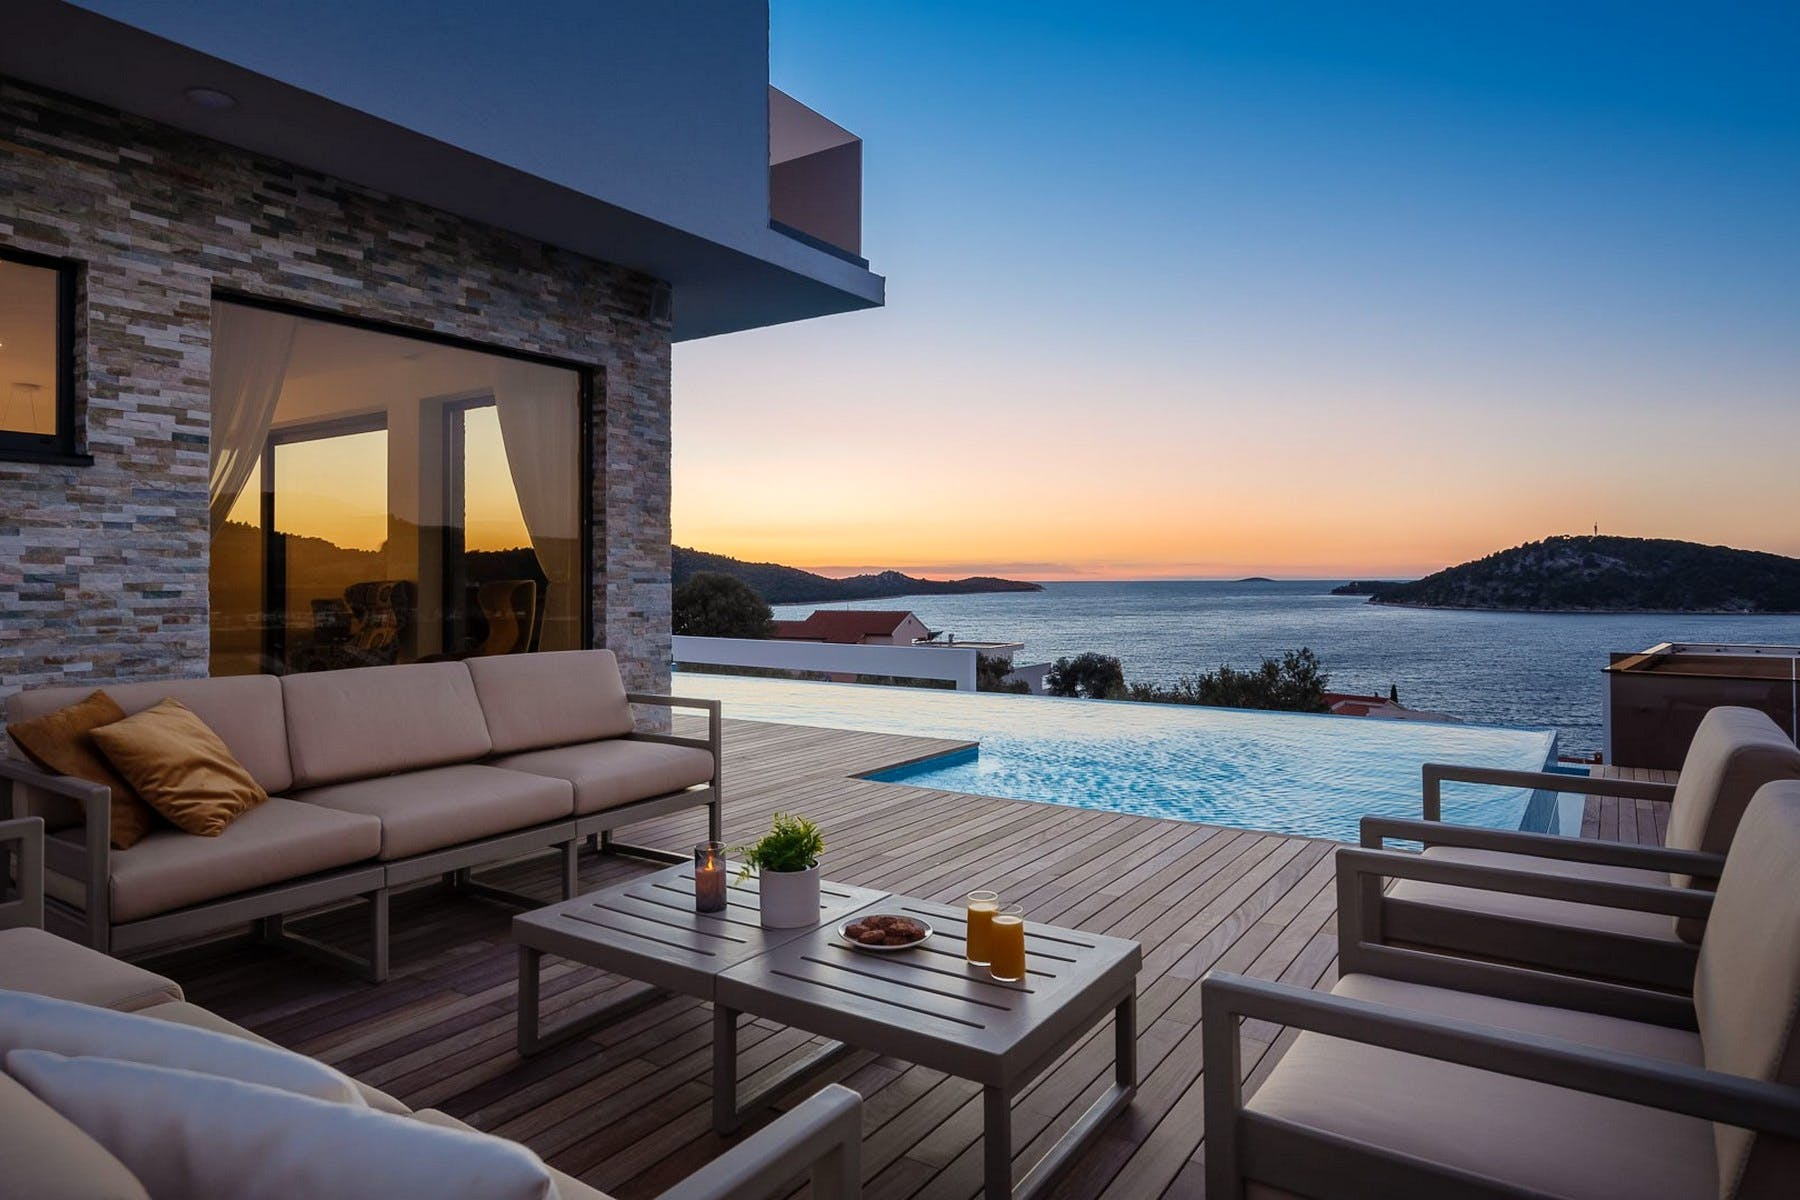 Sunset and sea view from the villa